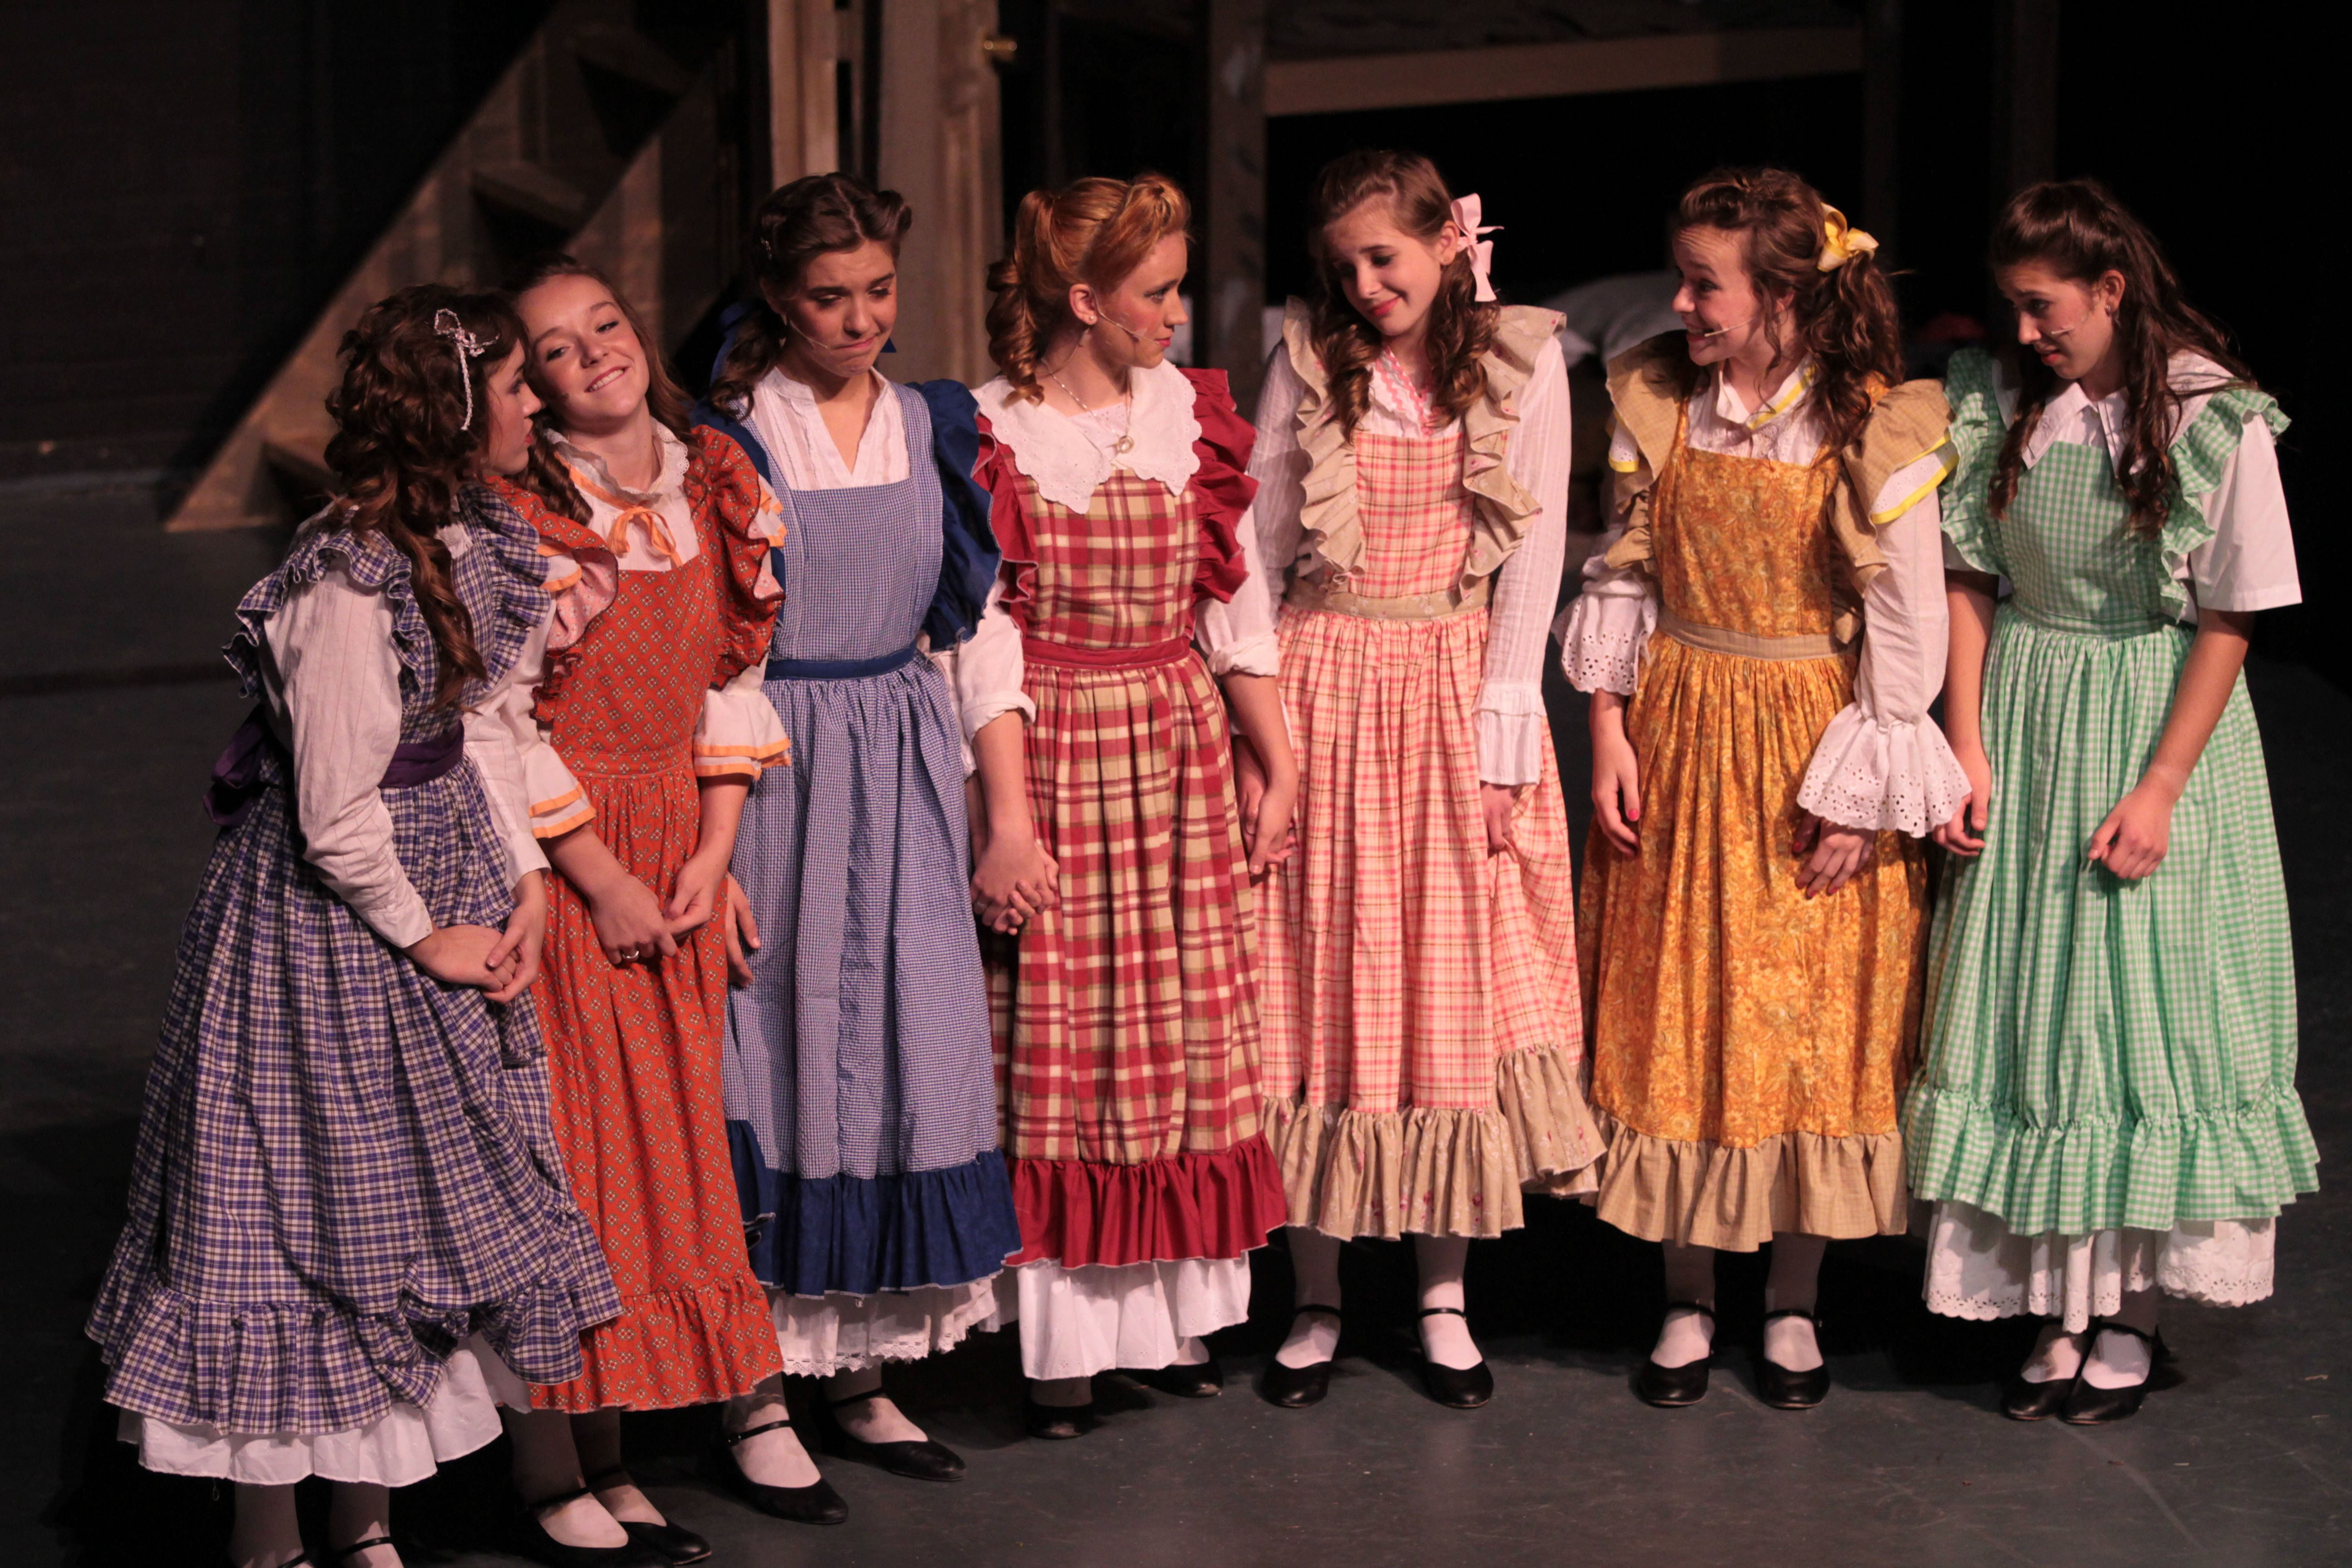 7 Brides For 7 Brothers Costumes Google Search Bride